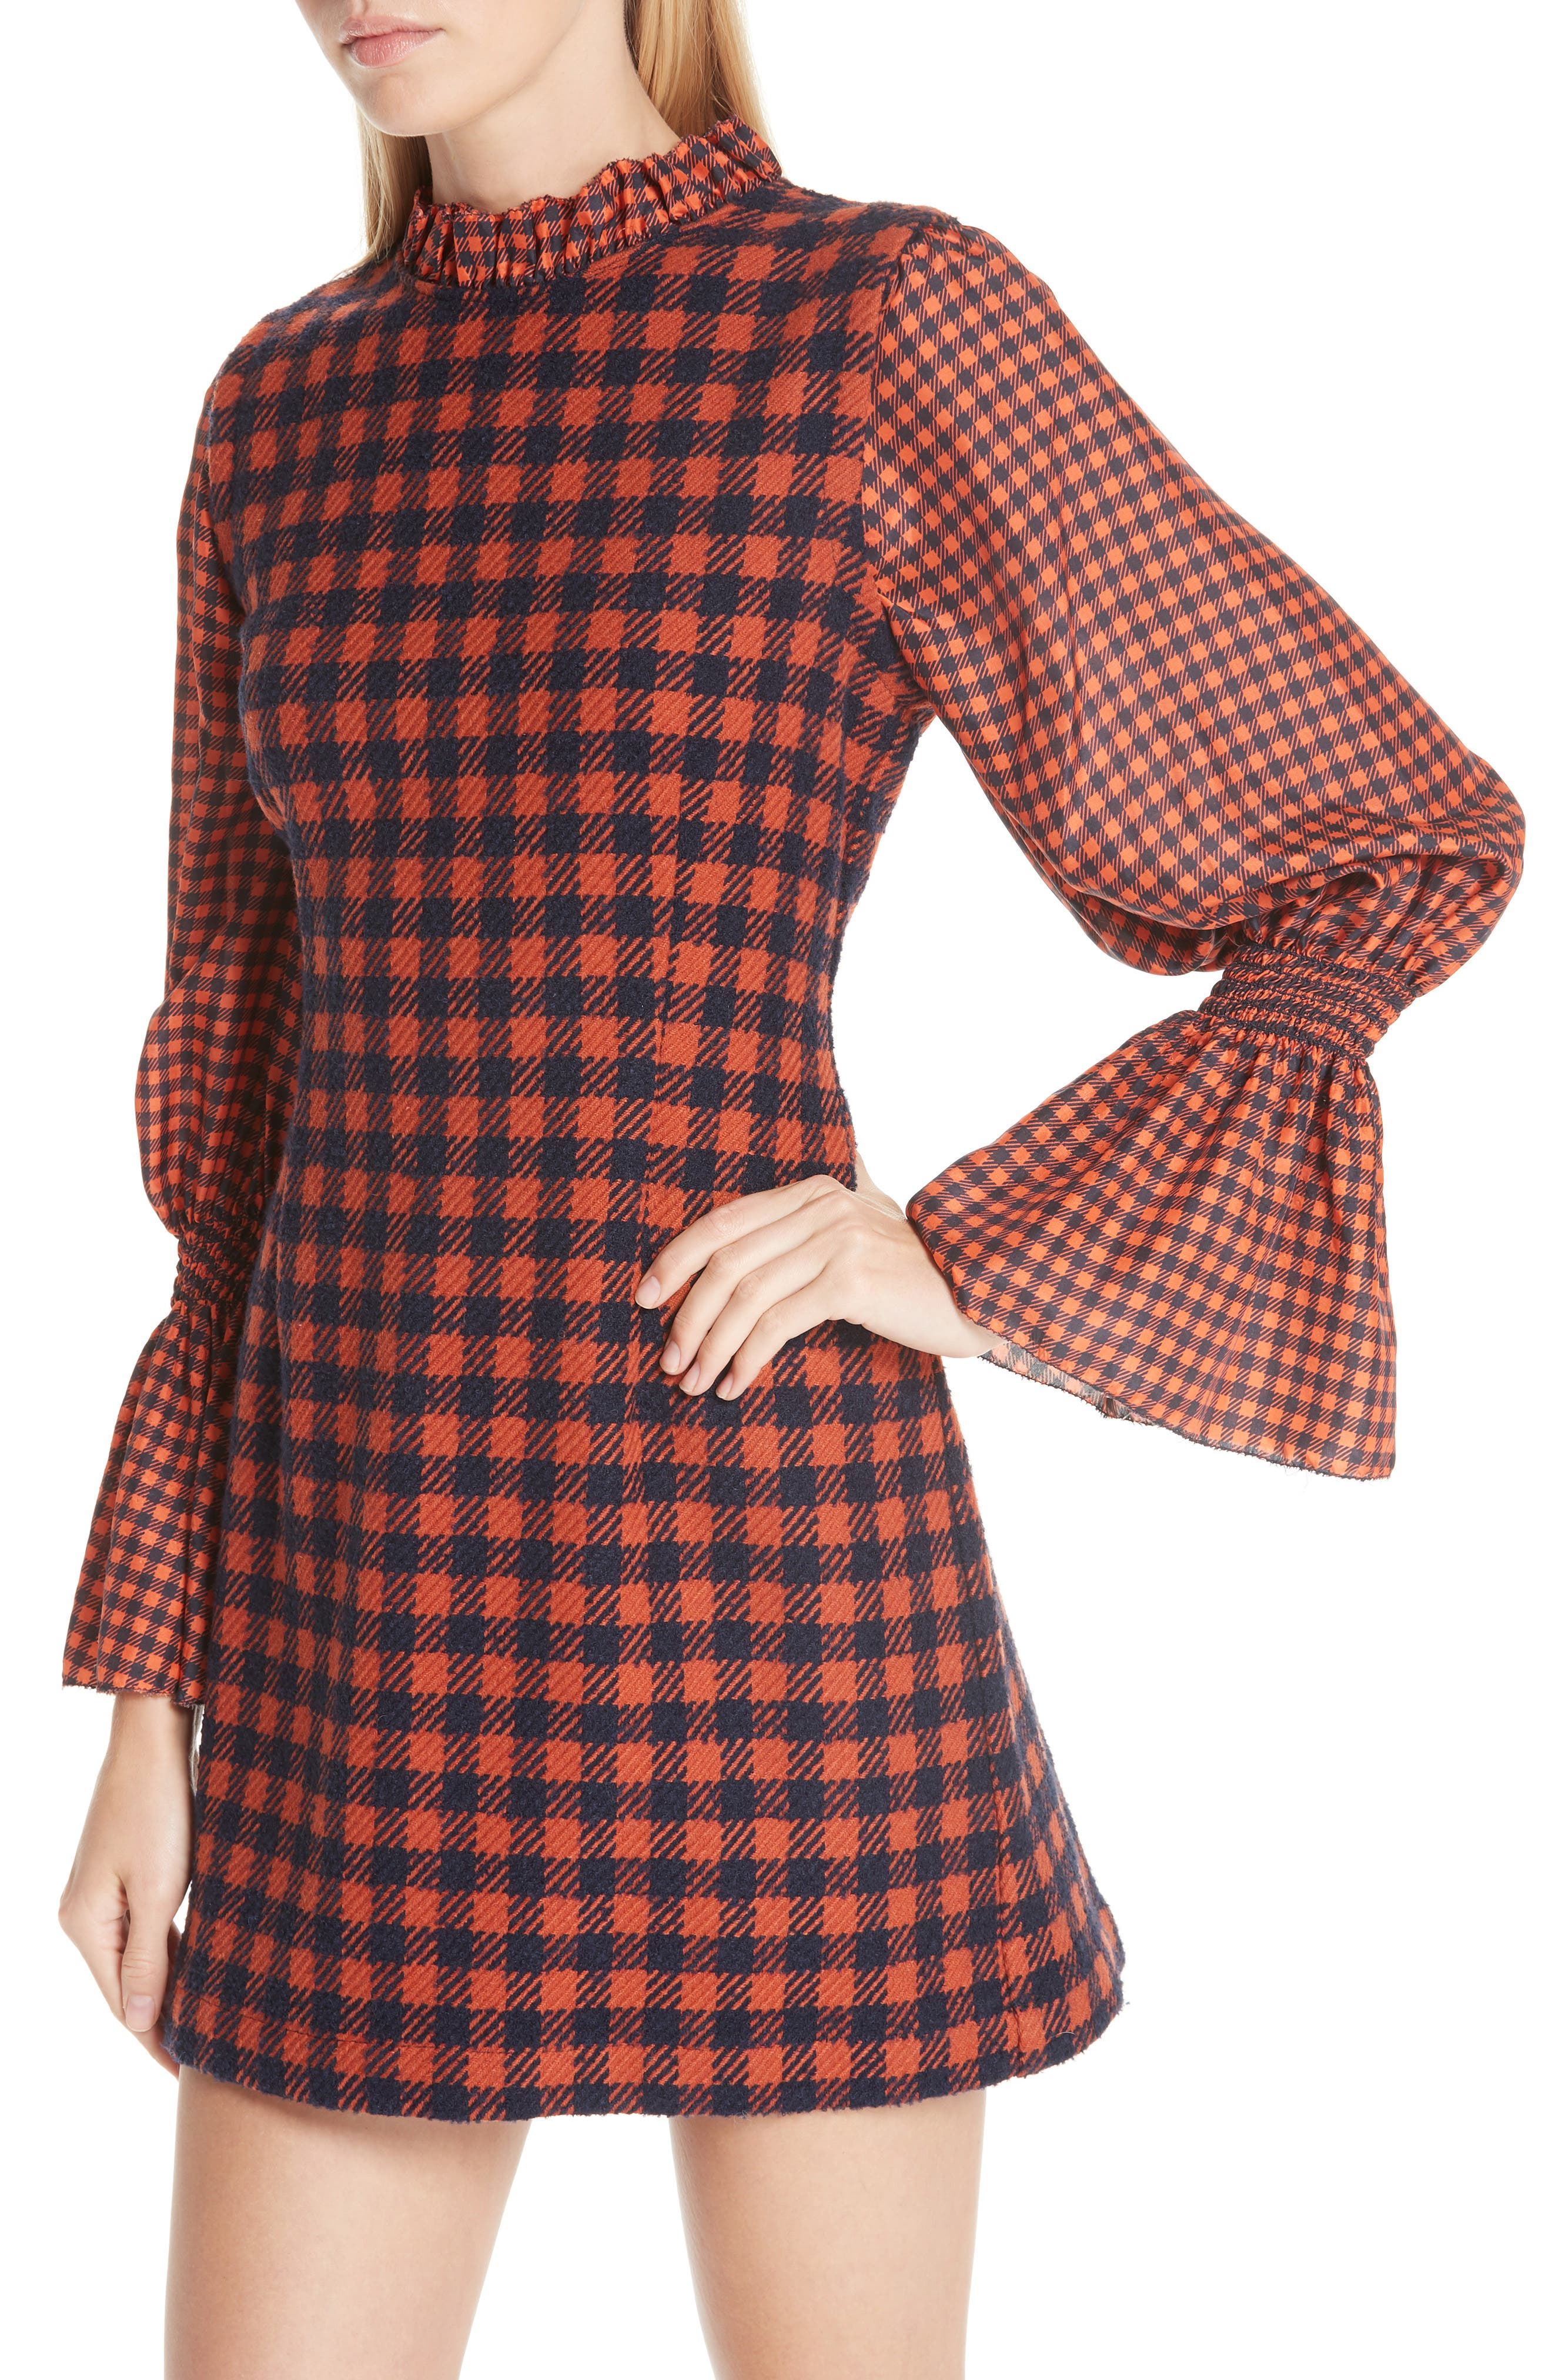 Ethno Pop Checkered Combo Dress,                             Alternate thumbnail 4, color,                             800